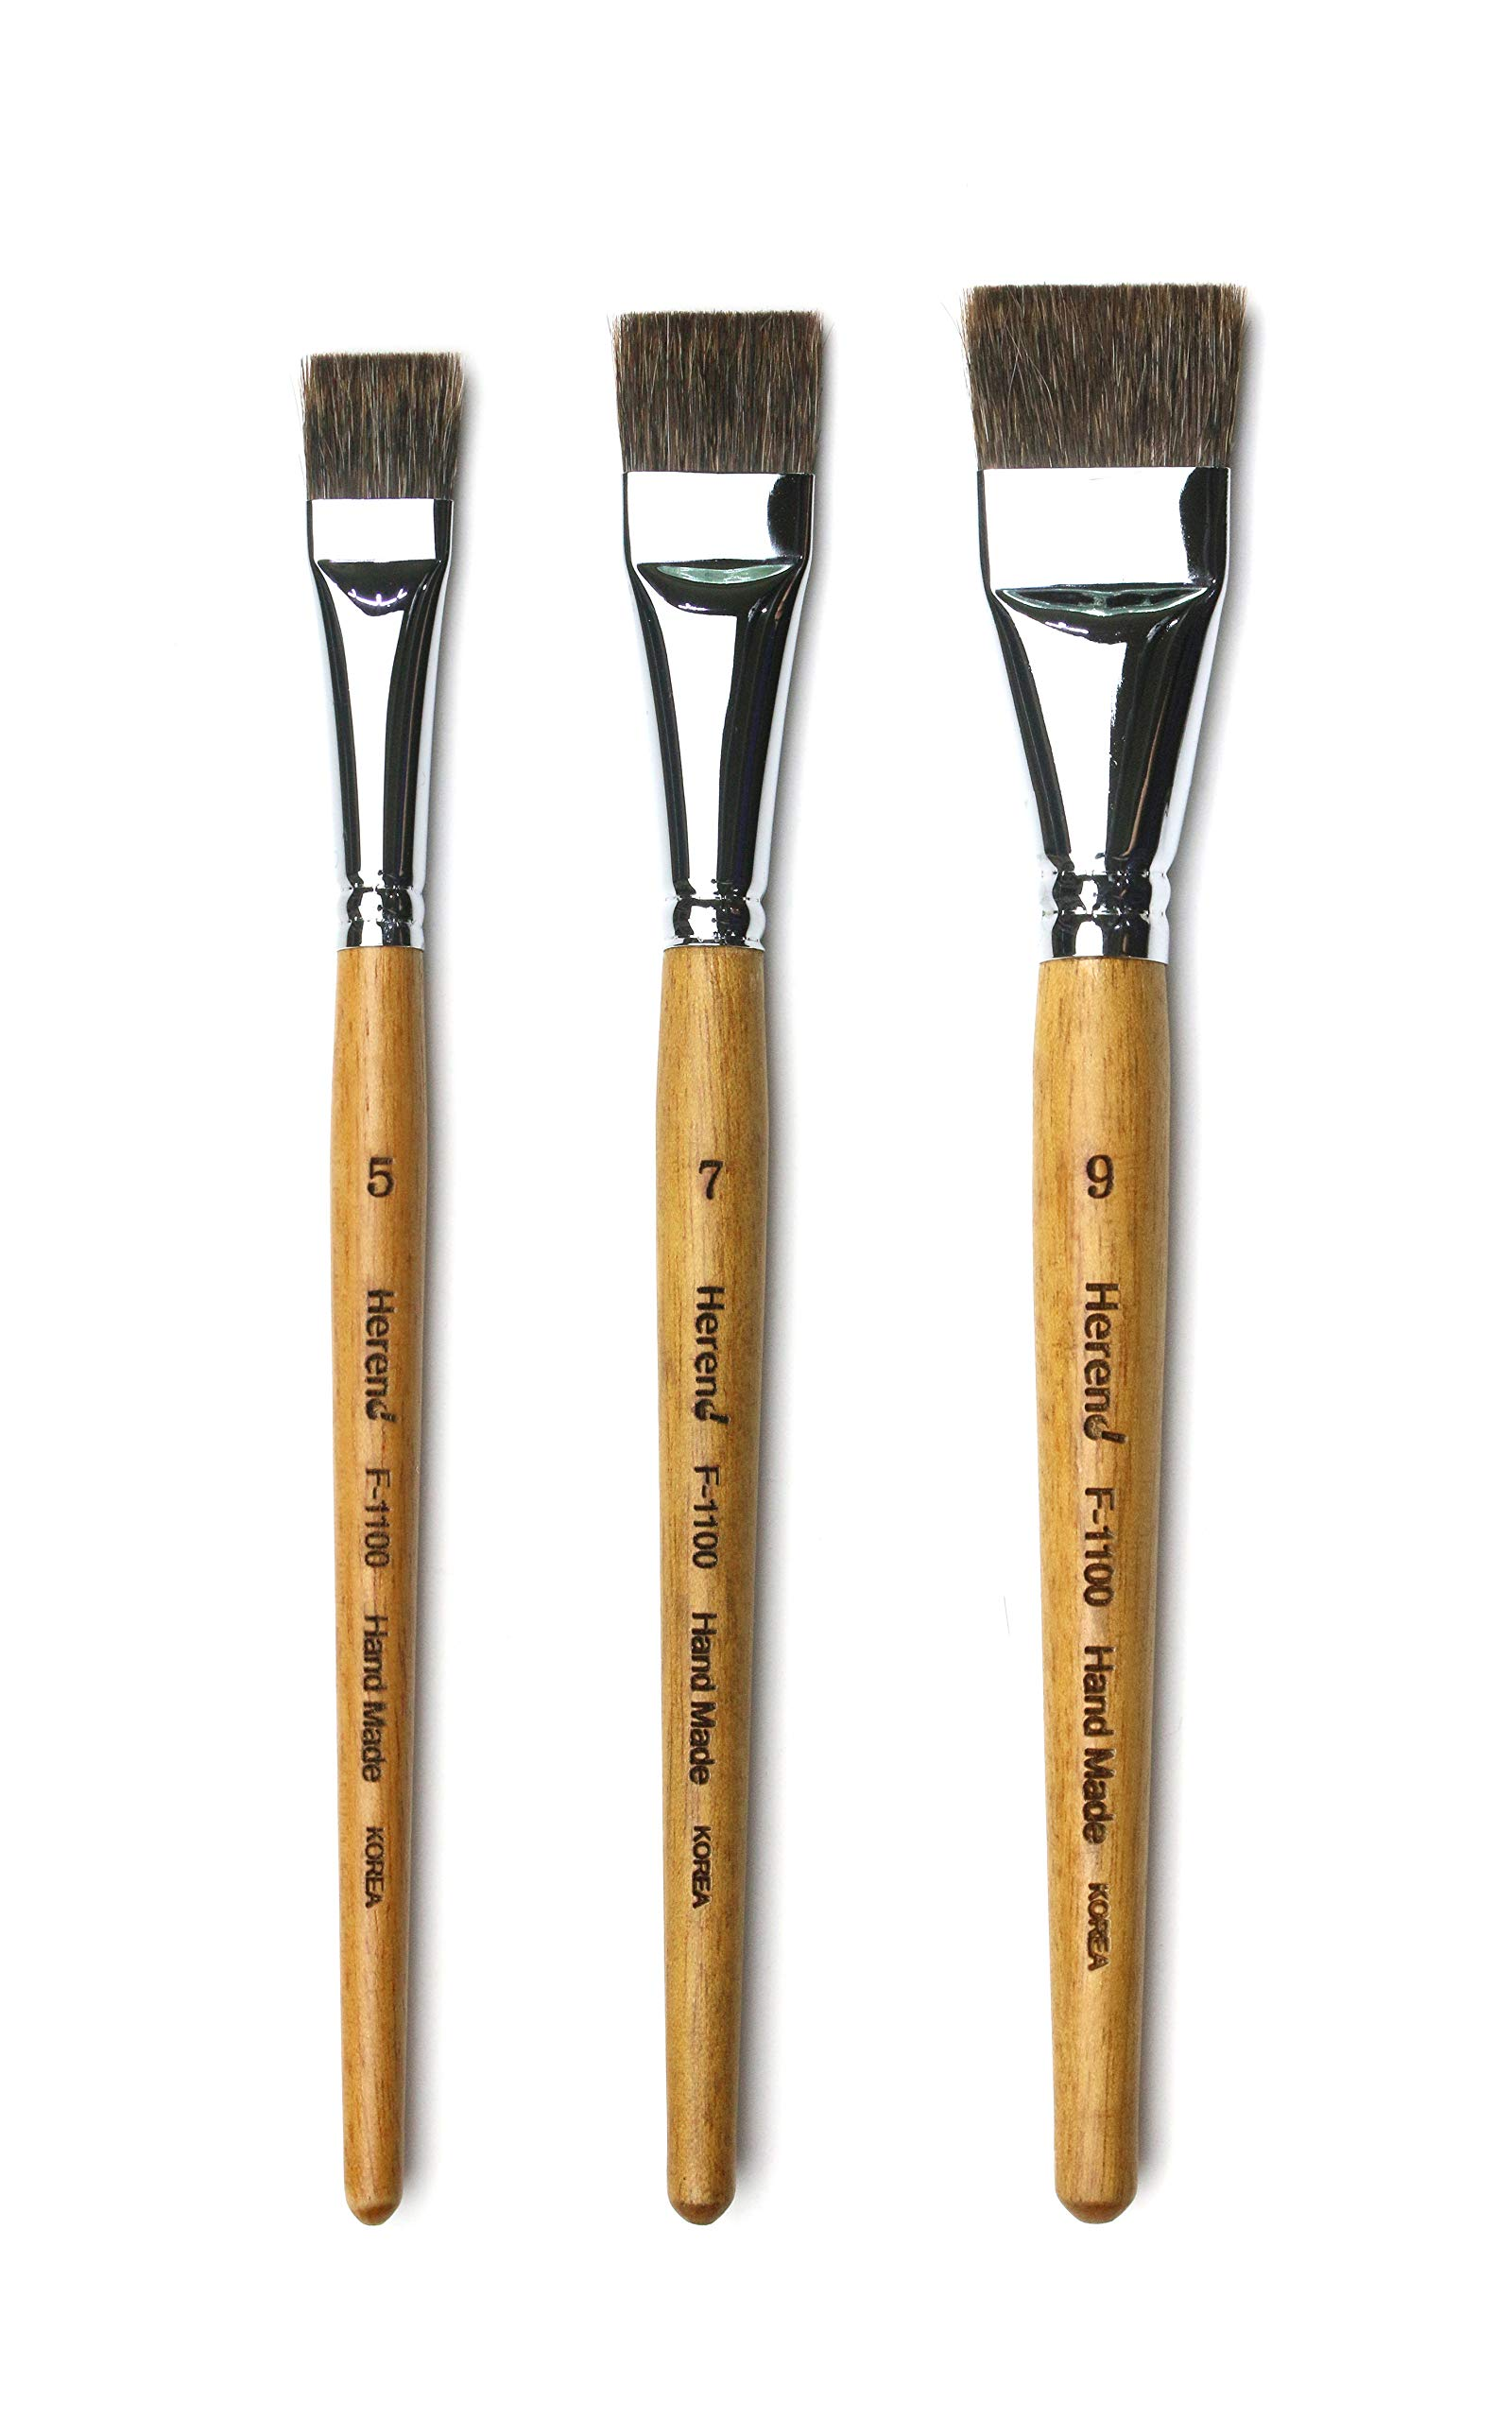 Herend Brush Series F-1100 (No.3 ~ No.13) for Watercolor with Chipmunk Hair/Hake Flat Paintbrush (Set (5,7,9)) by Herend Brush